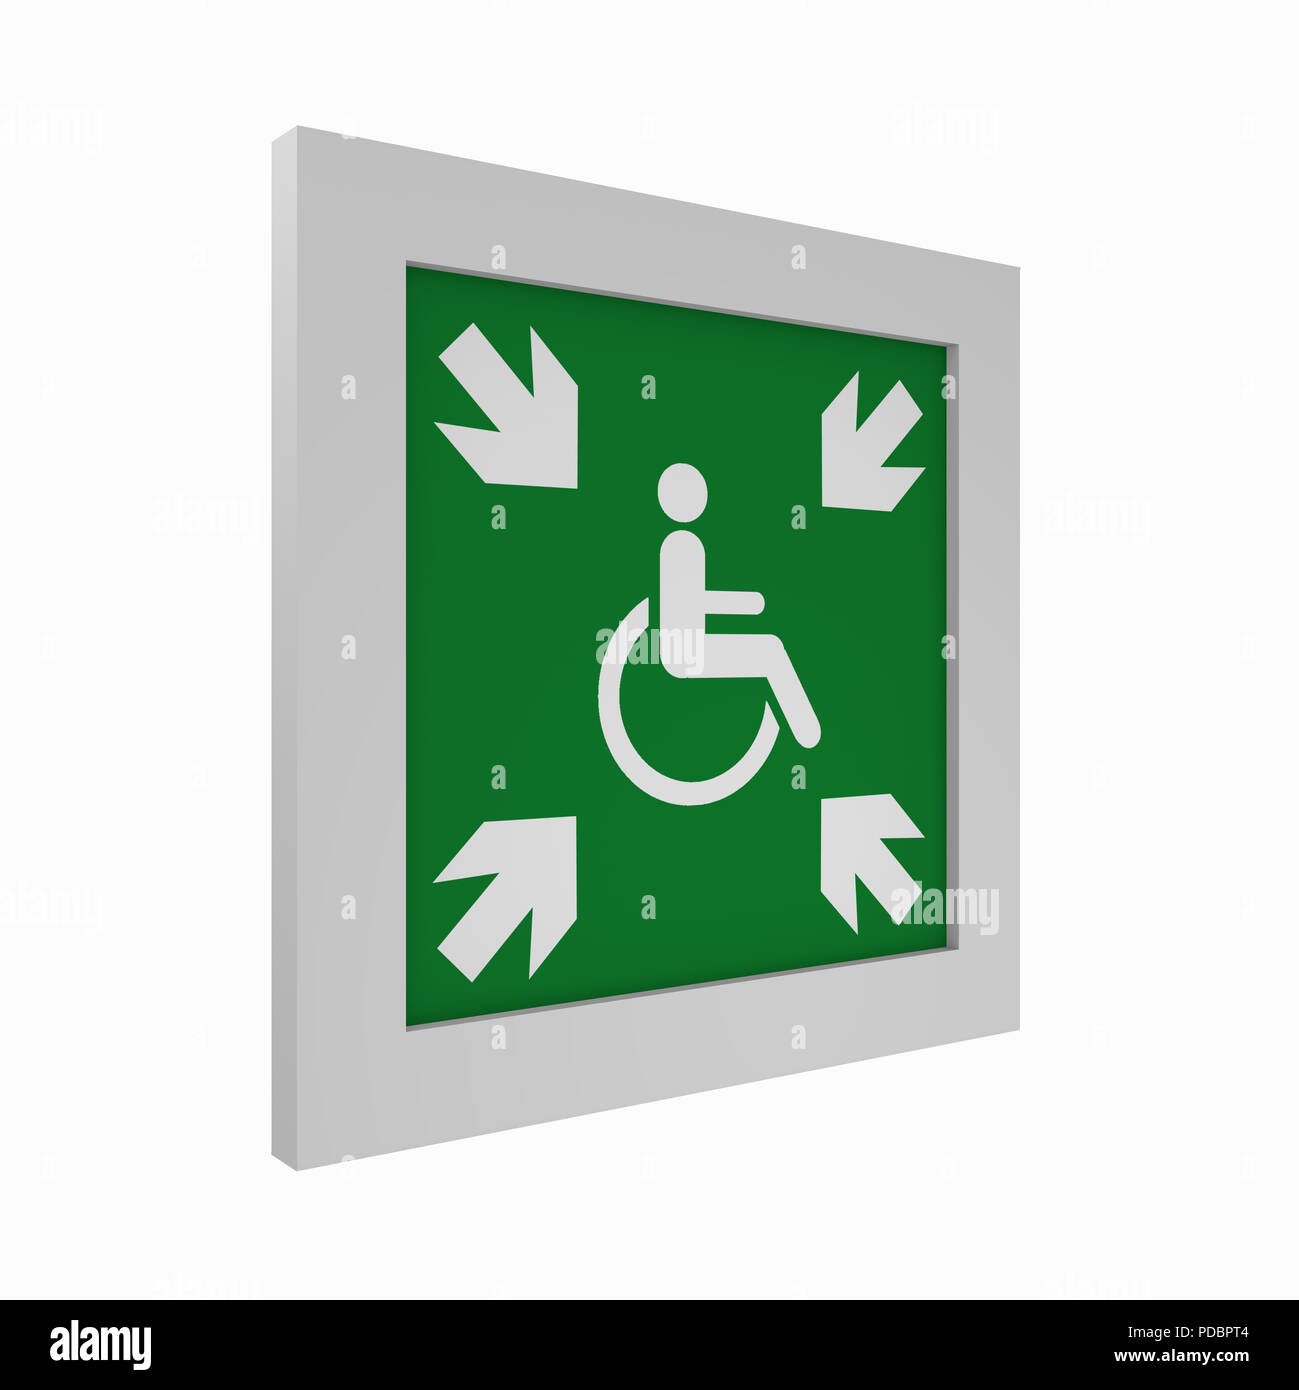 current escape signs according to ASR A1.3: provisional evacuation point. Side view, 3d rendering - Stock Image